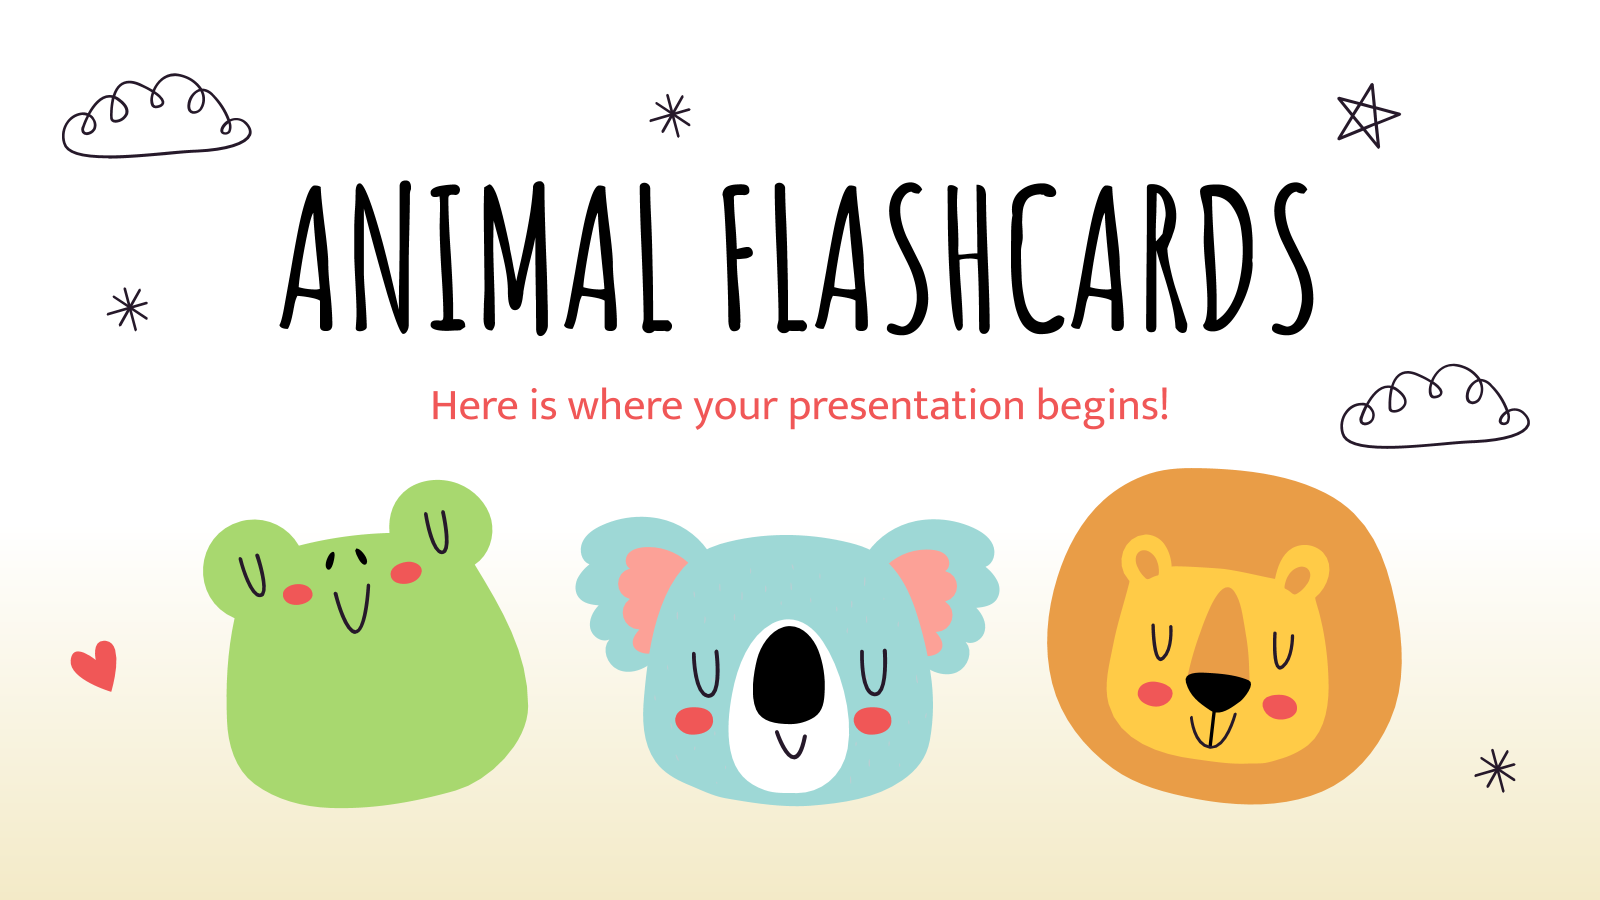 Animal Flashcards presentation template